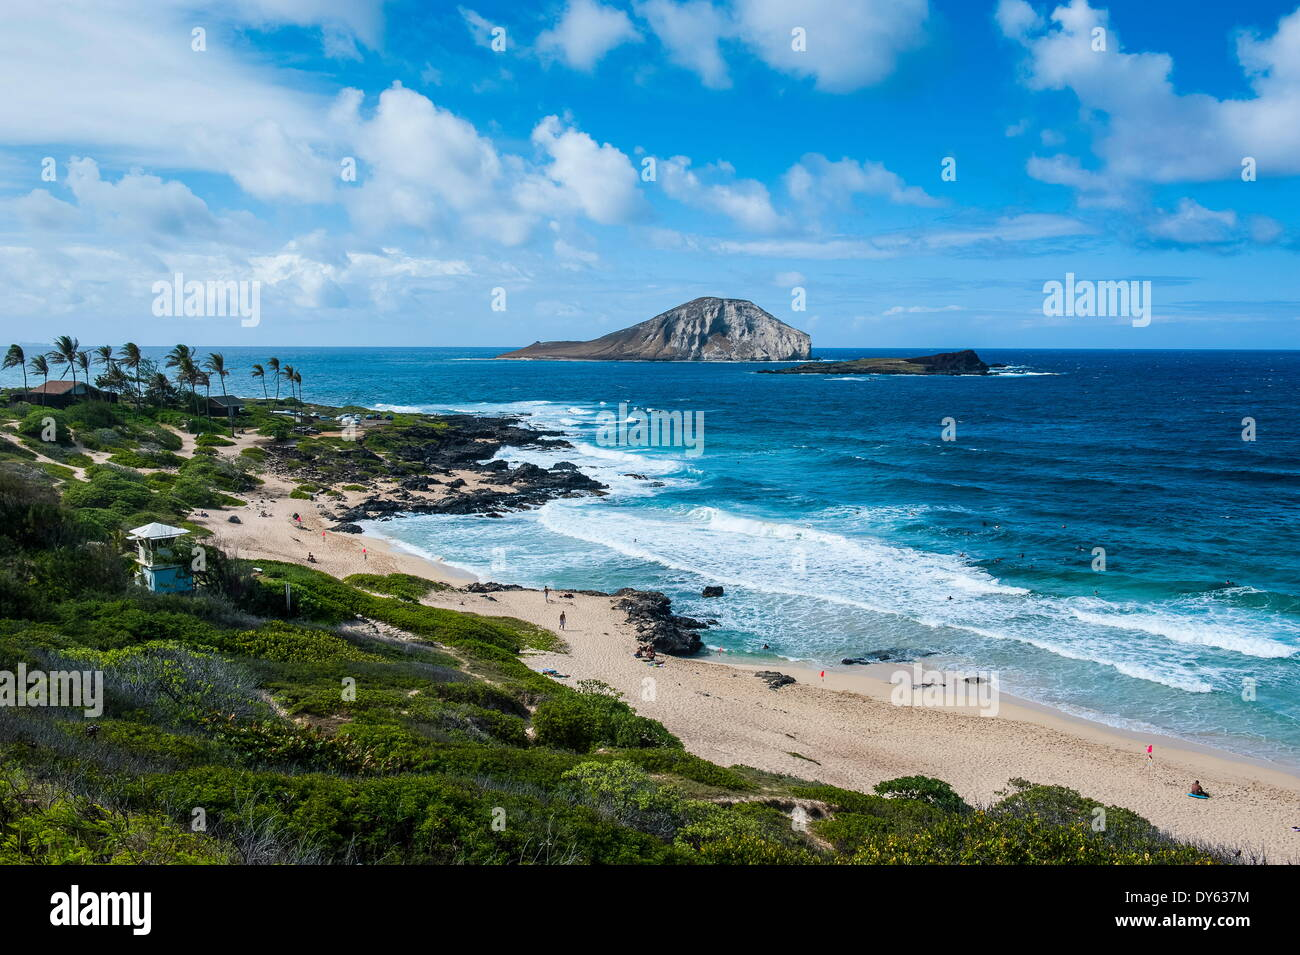 Kaohikaipu Island et plage de Kaupo, Oahu, Hawaii, United States of America, Pacifique Photo Stock